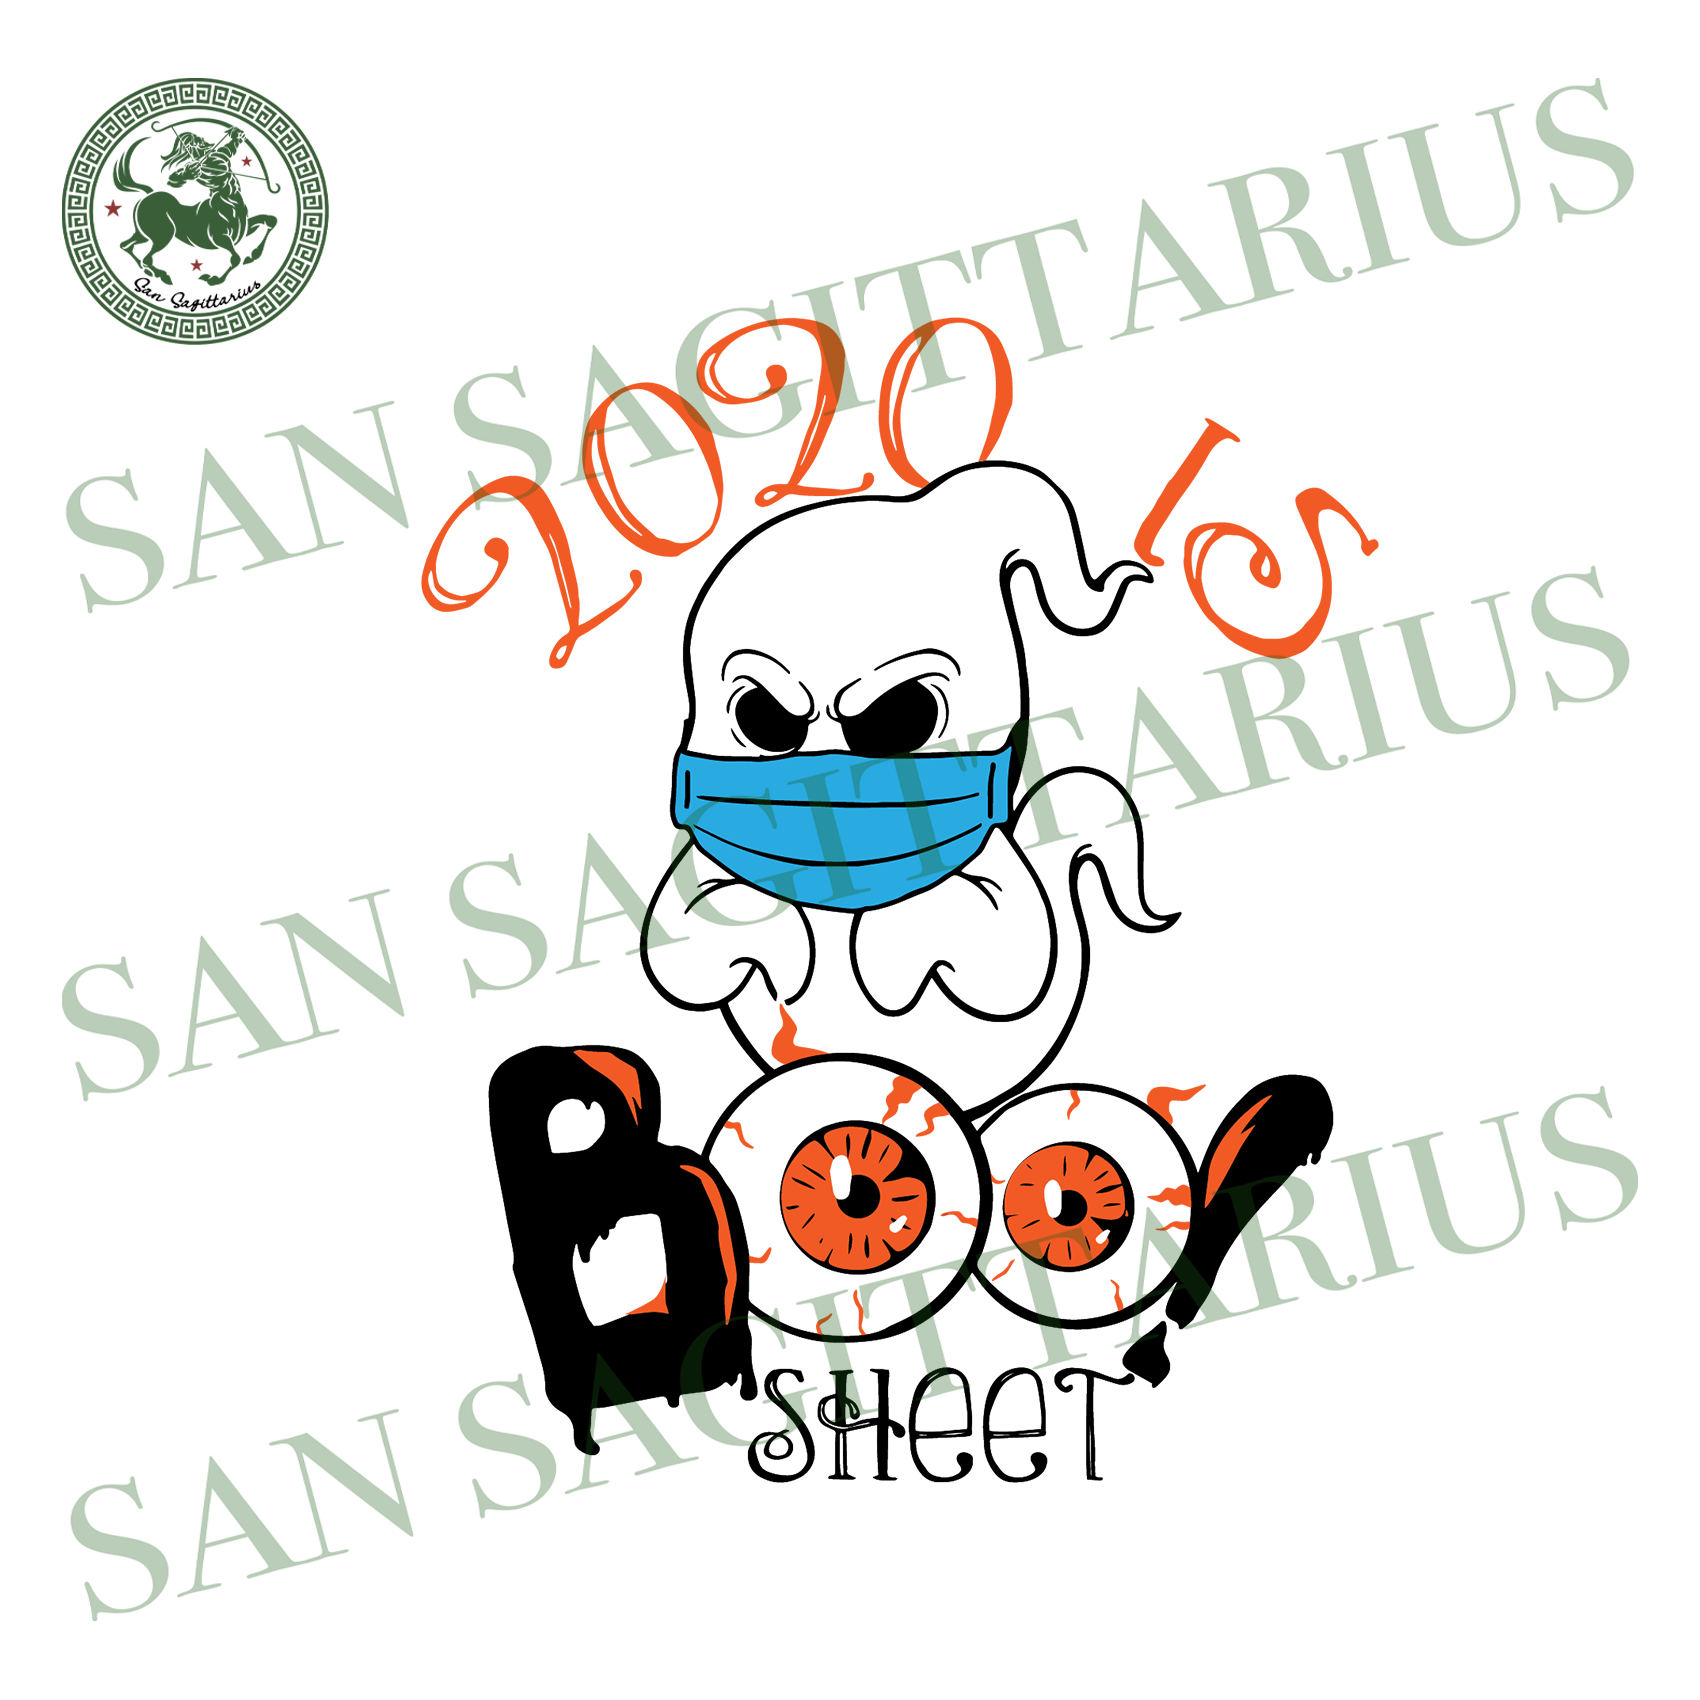 2020 is boo sheet svg,svg,Funny Halloween svg, Sanderson Sisters svg,boo daddy svg,svg cricut, silhouette svg files, cricut svg, silhouette svg, svg designs, vinyl svg